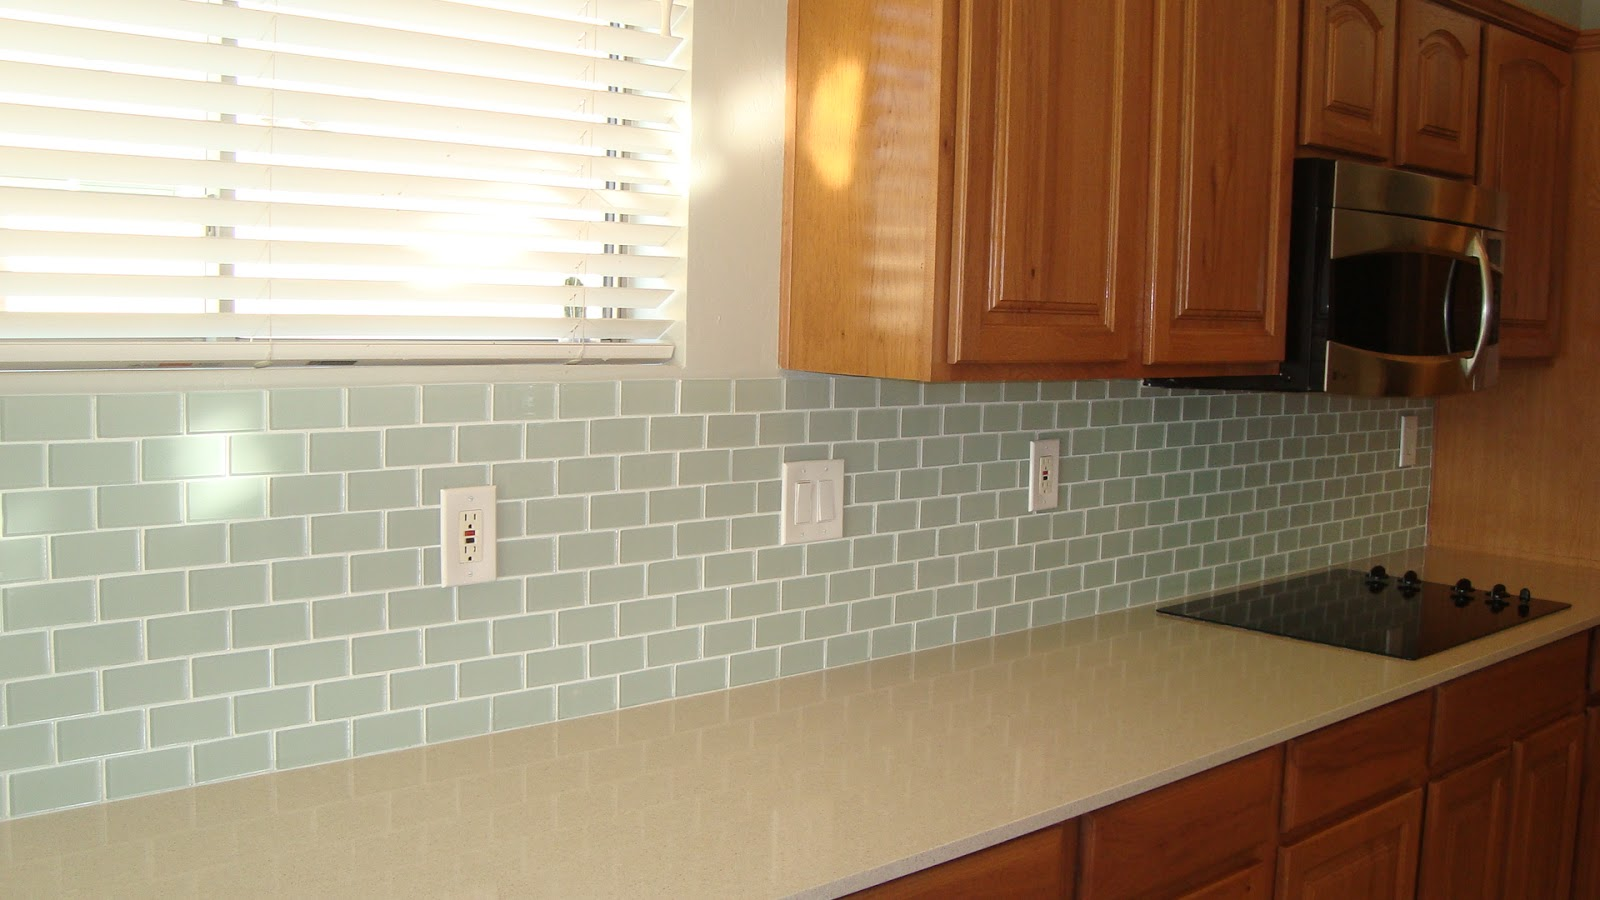 Home Depot Kitchen Wall Cabinets Christine's Favorite Things: Glass Tile Backsplash